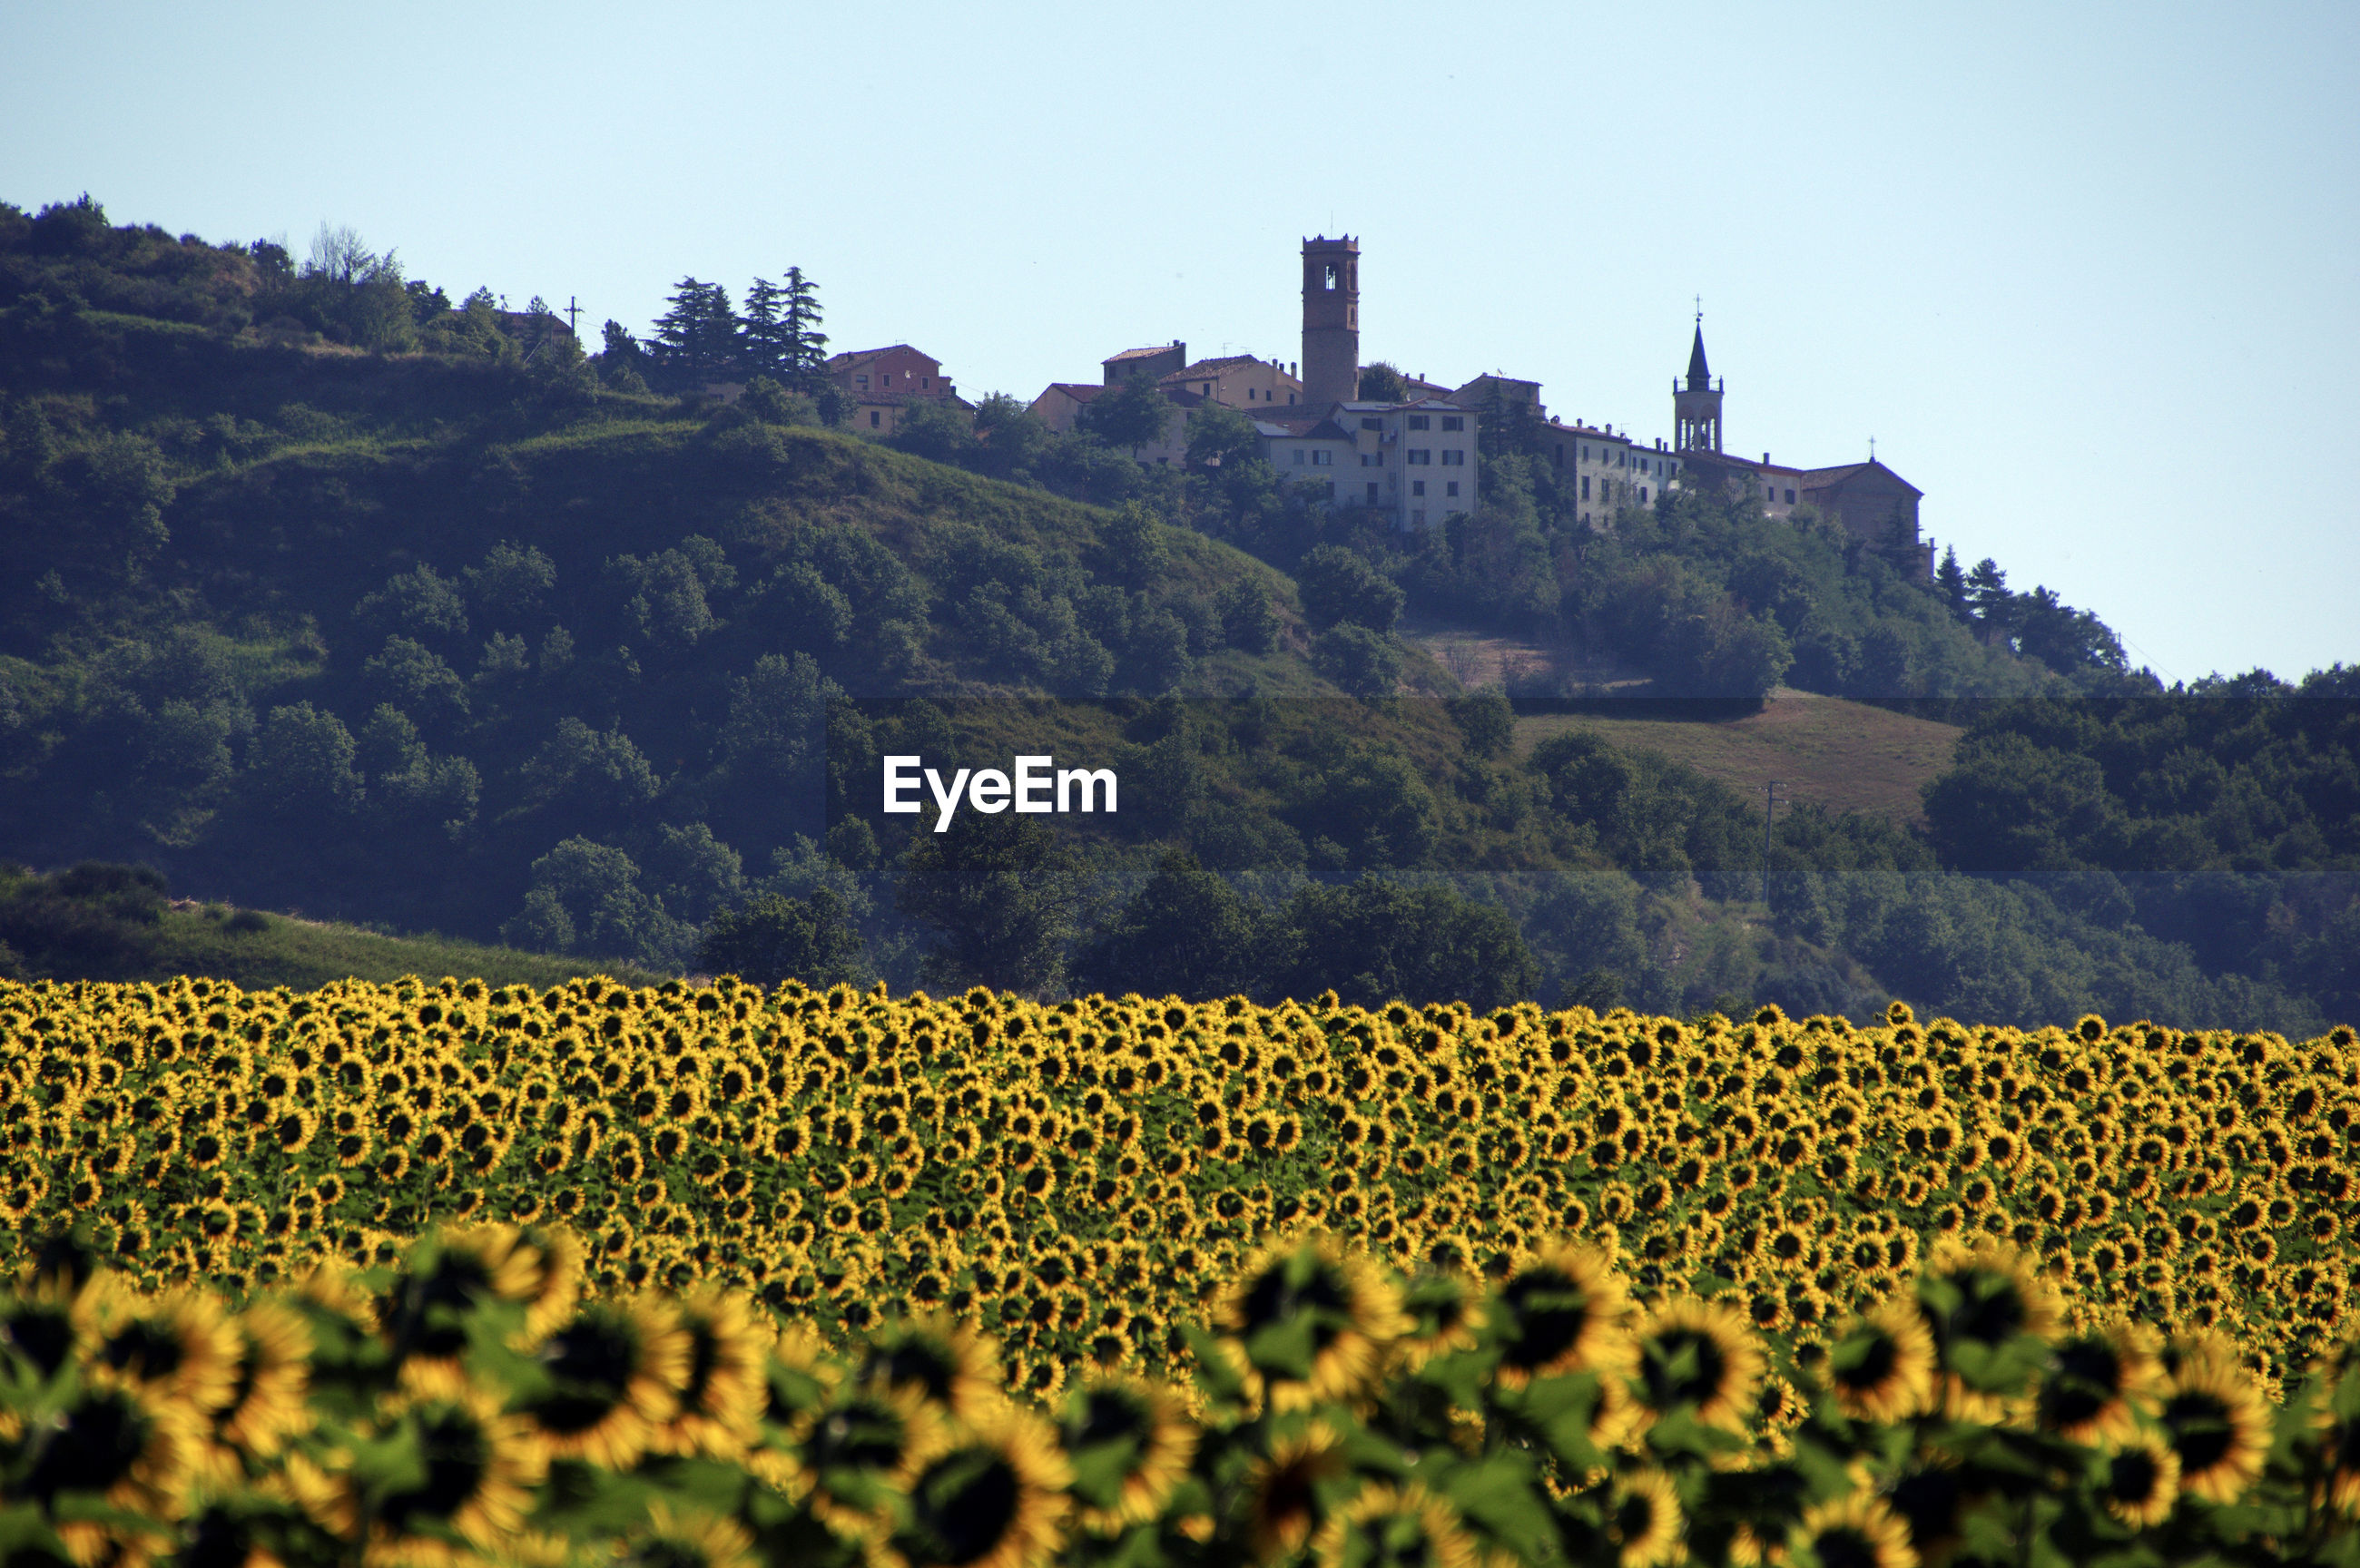 VIEW OF SUNFLOWER FIELD AGAINST SKY